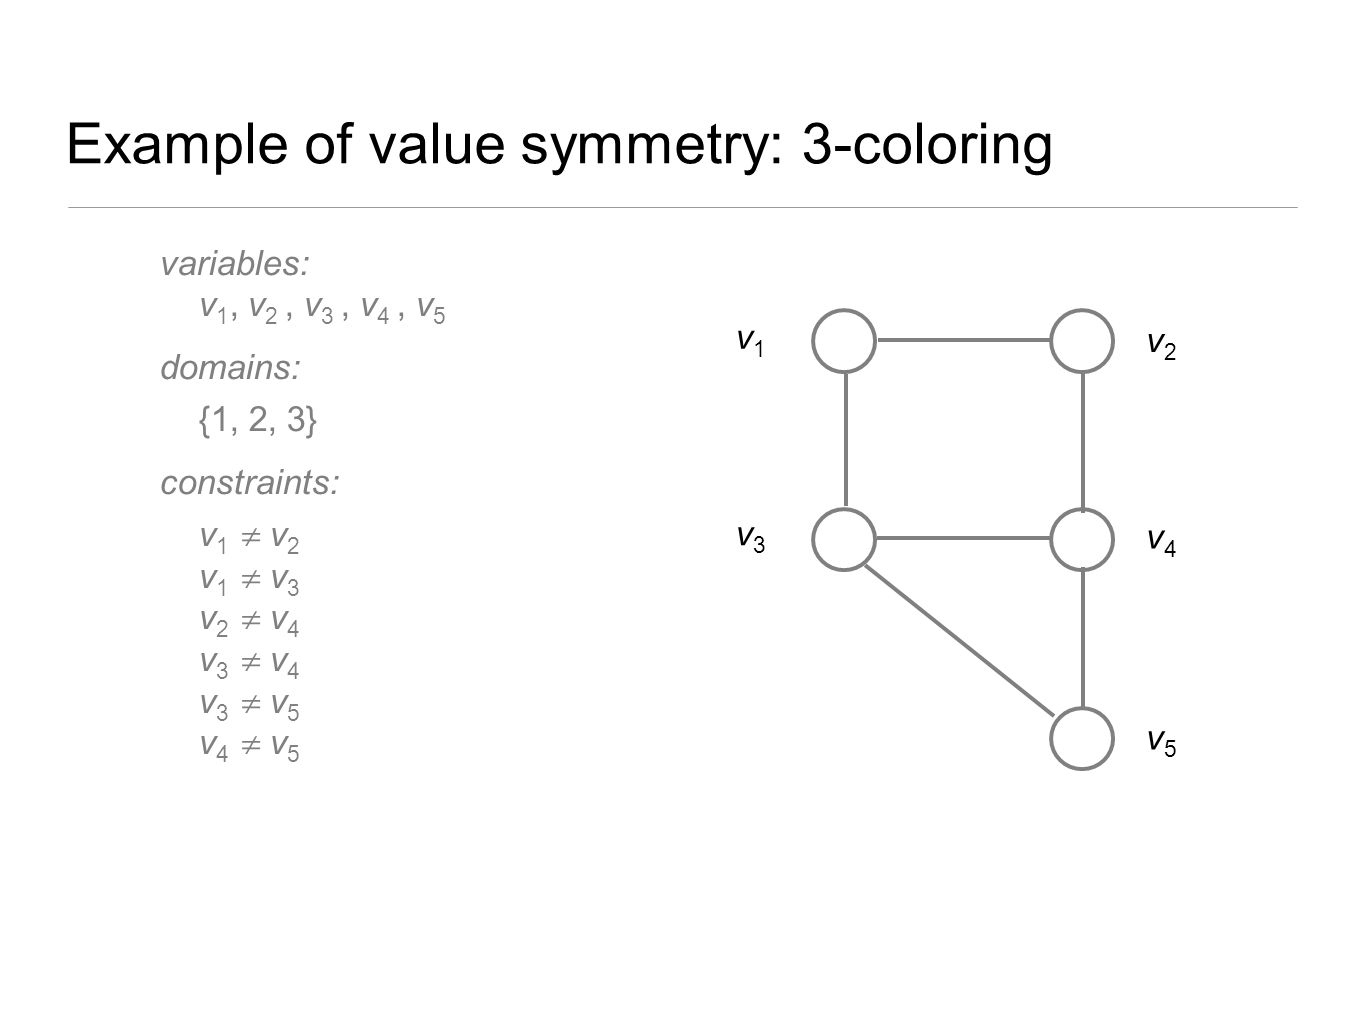 Example of value symmetry: 3-coloring variables: v 1, v 2, v 3, v 4, v 5 domains: {1, 2, 3} constraints: v 1  v 2 v 1  v 3 v 2  v 4 v 3  v 4 v 3 